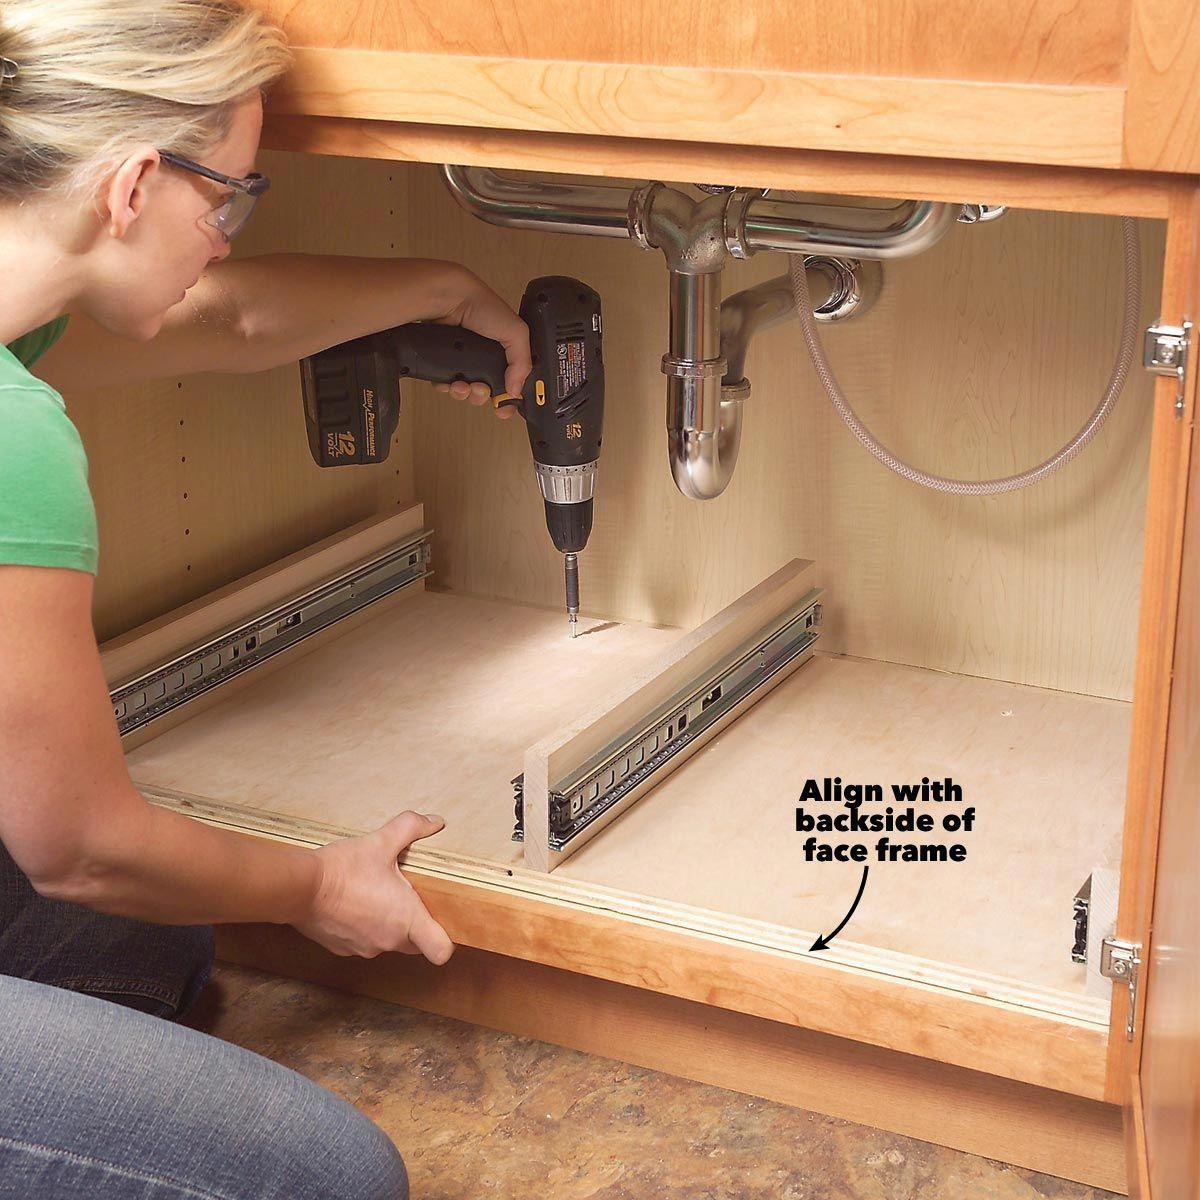 Kitchen Cabinet Storage Solutions Diy Pull Out Shelves The Family Handyman D Kitchen Cabinet Storage Kitchen Sink Storage Kitchen Cabinet Storage Solutions